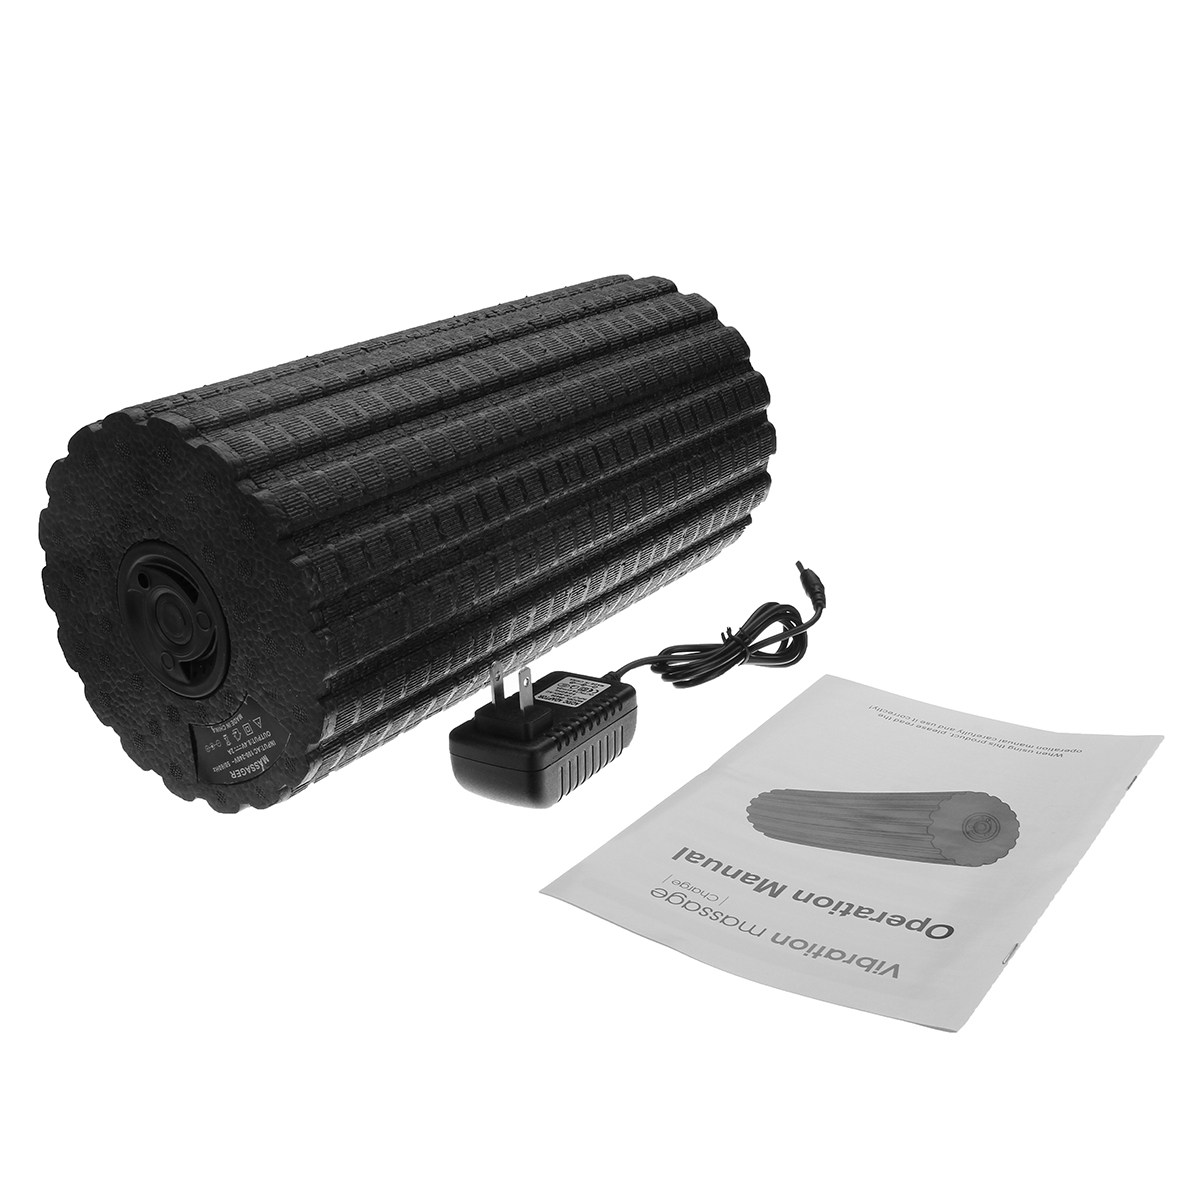 17 31cm Rechargeable Electric Vibrating Massage Foam Roller 4 Speed Muscle Recovery Yoga Pilates Fitness Gym Massage yoga gym exercises fitness pilates epp foam roller